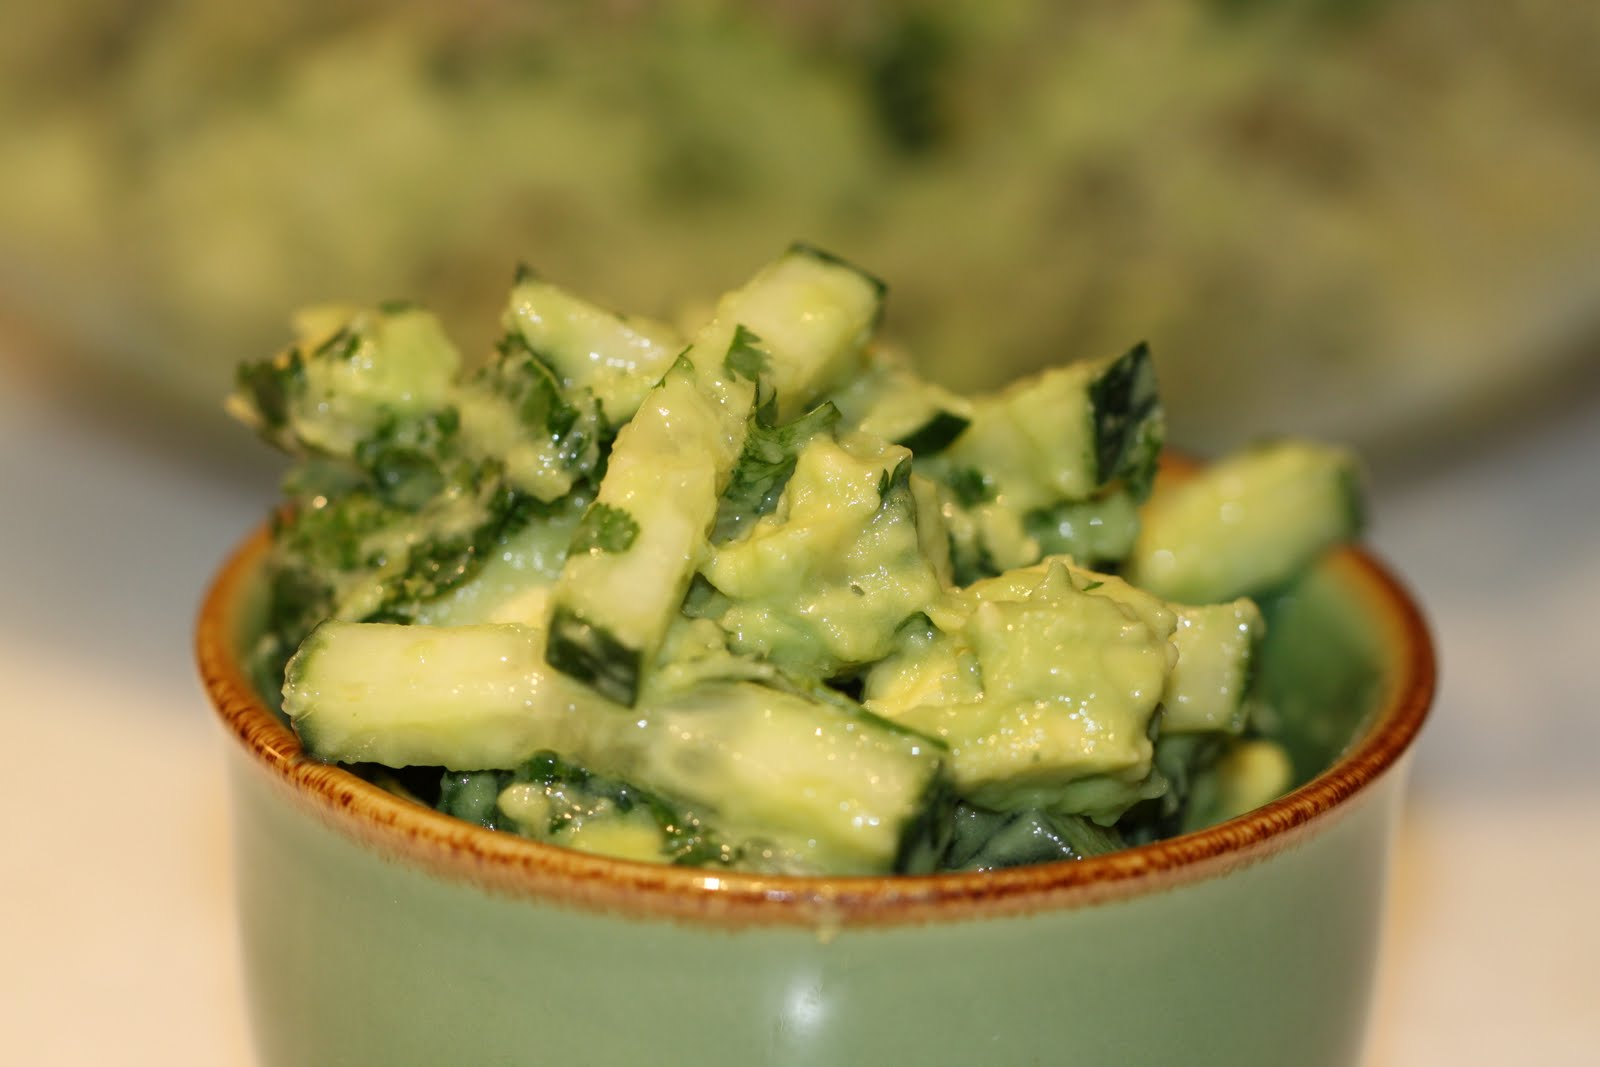 Shelly's Belly: Cucumber Avocado Salad